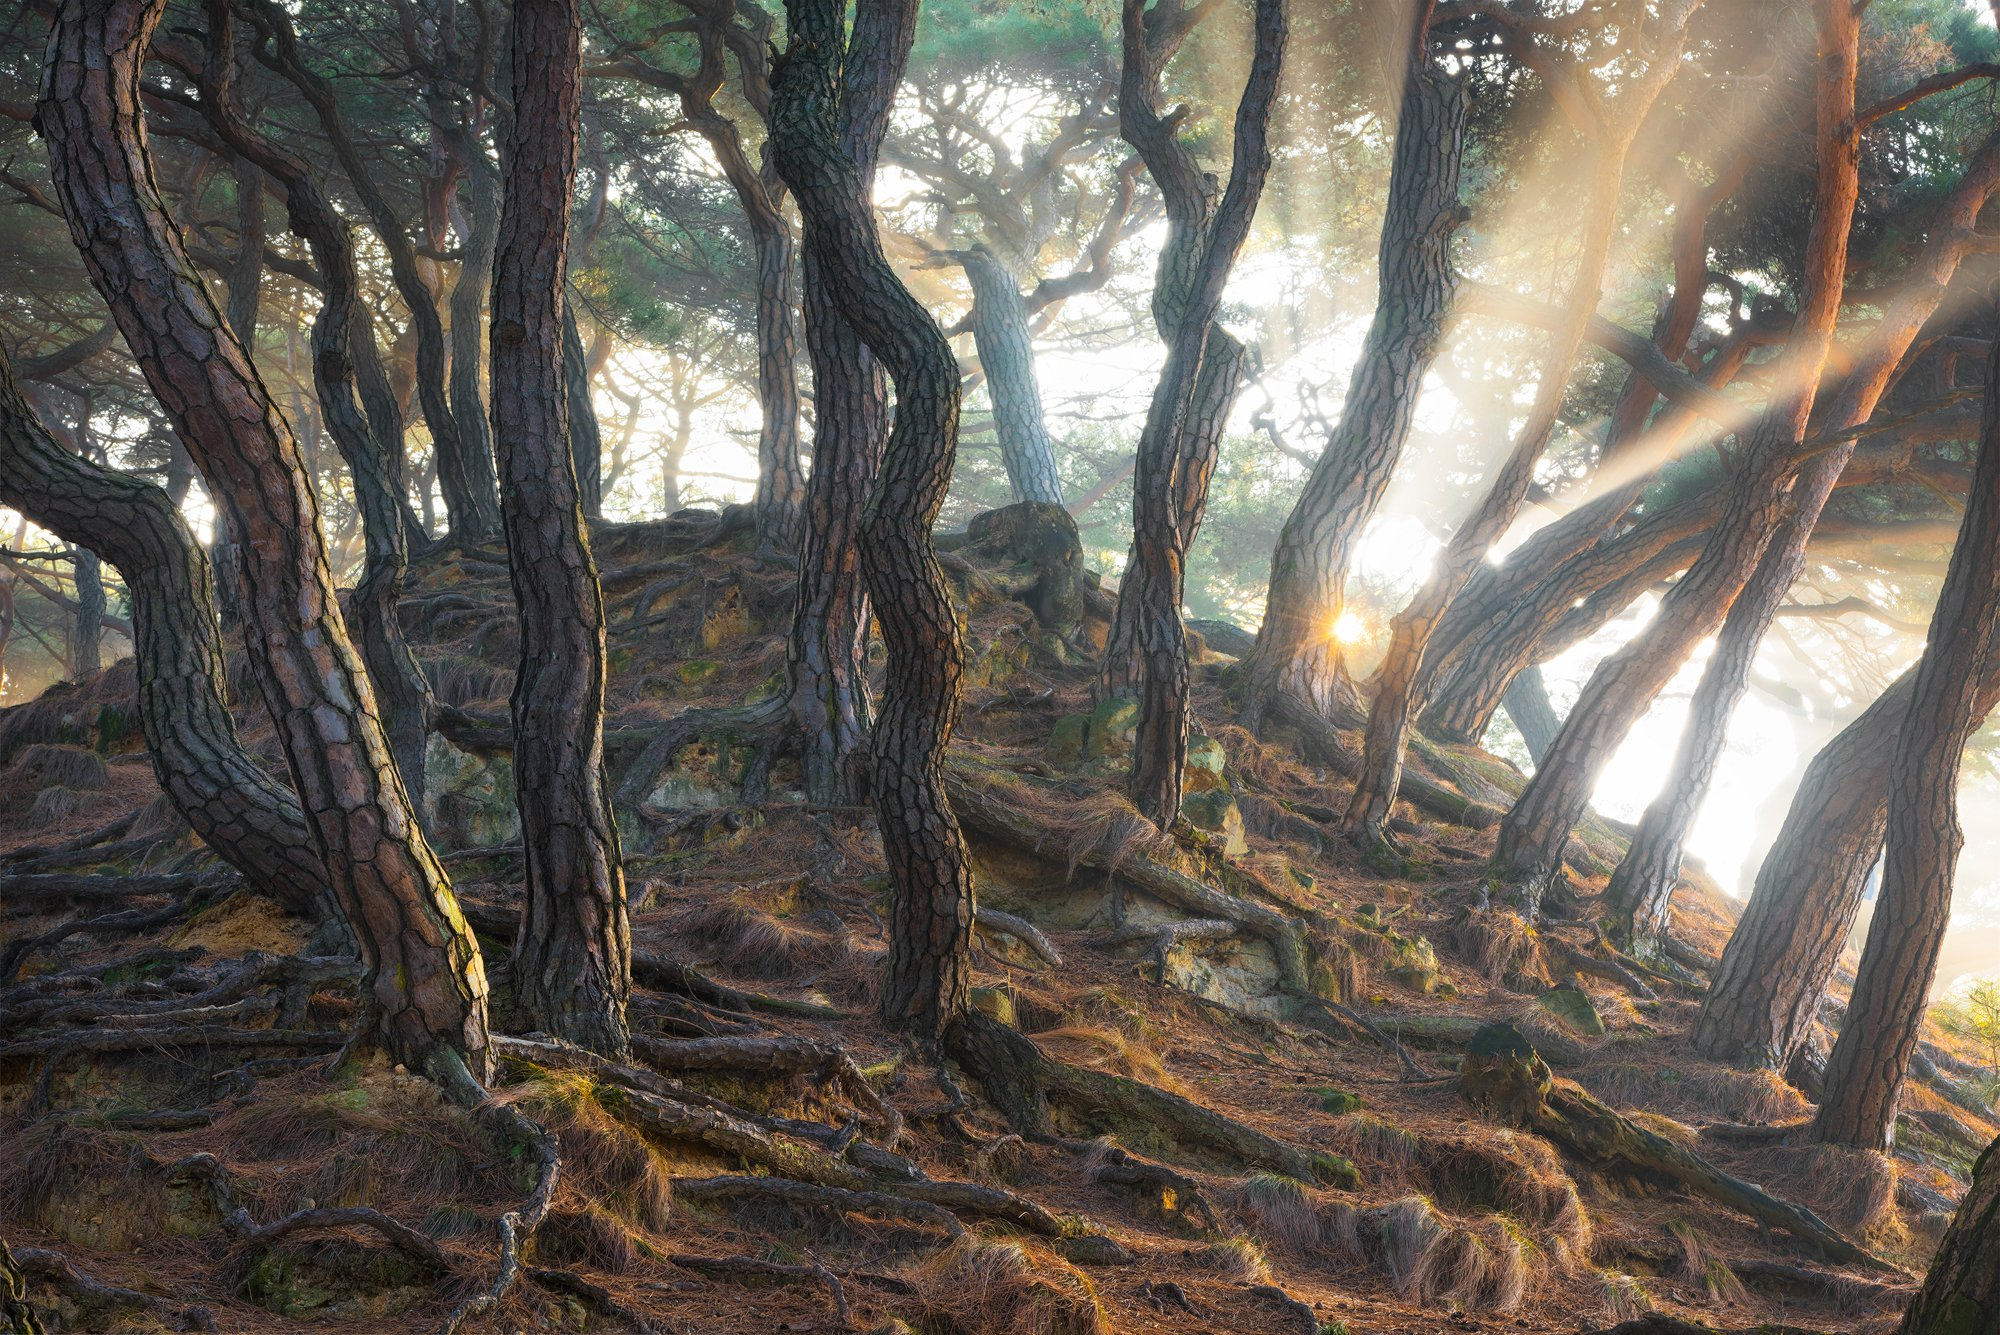 pine, forest, light, woods, roots, nature, tiger skin, trees, trunks, snake, 류재윤